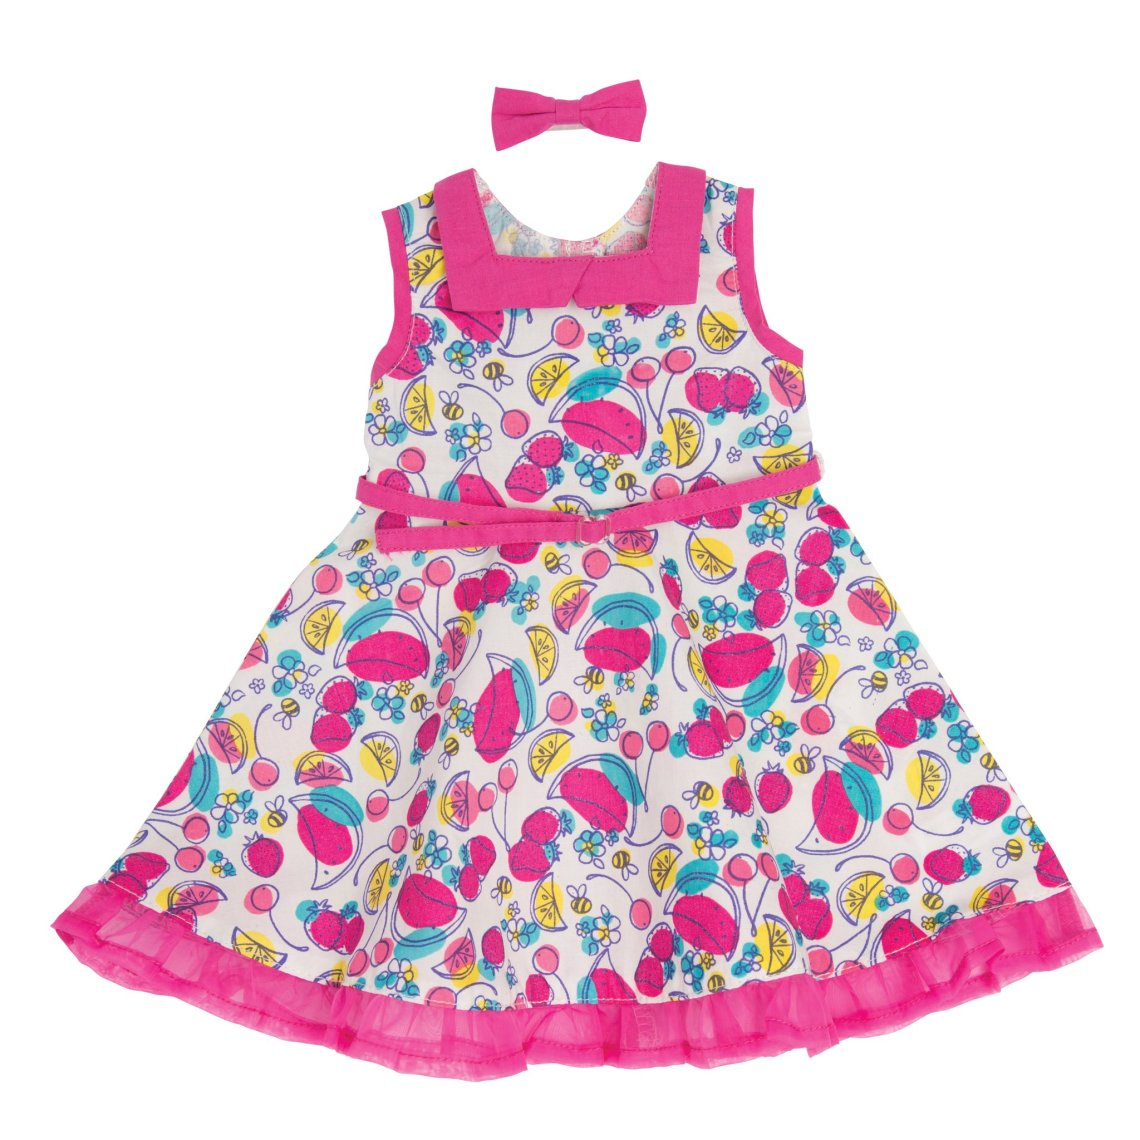 KM151_Standing_Ovation_white_50s_inspired_dress_with_multi-coloured_fruit_print_and_Pink_abow_hairclip_for_all_maplelea_dolls_flat